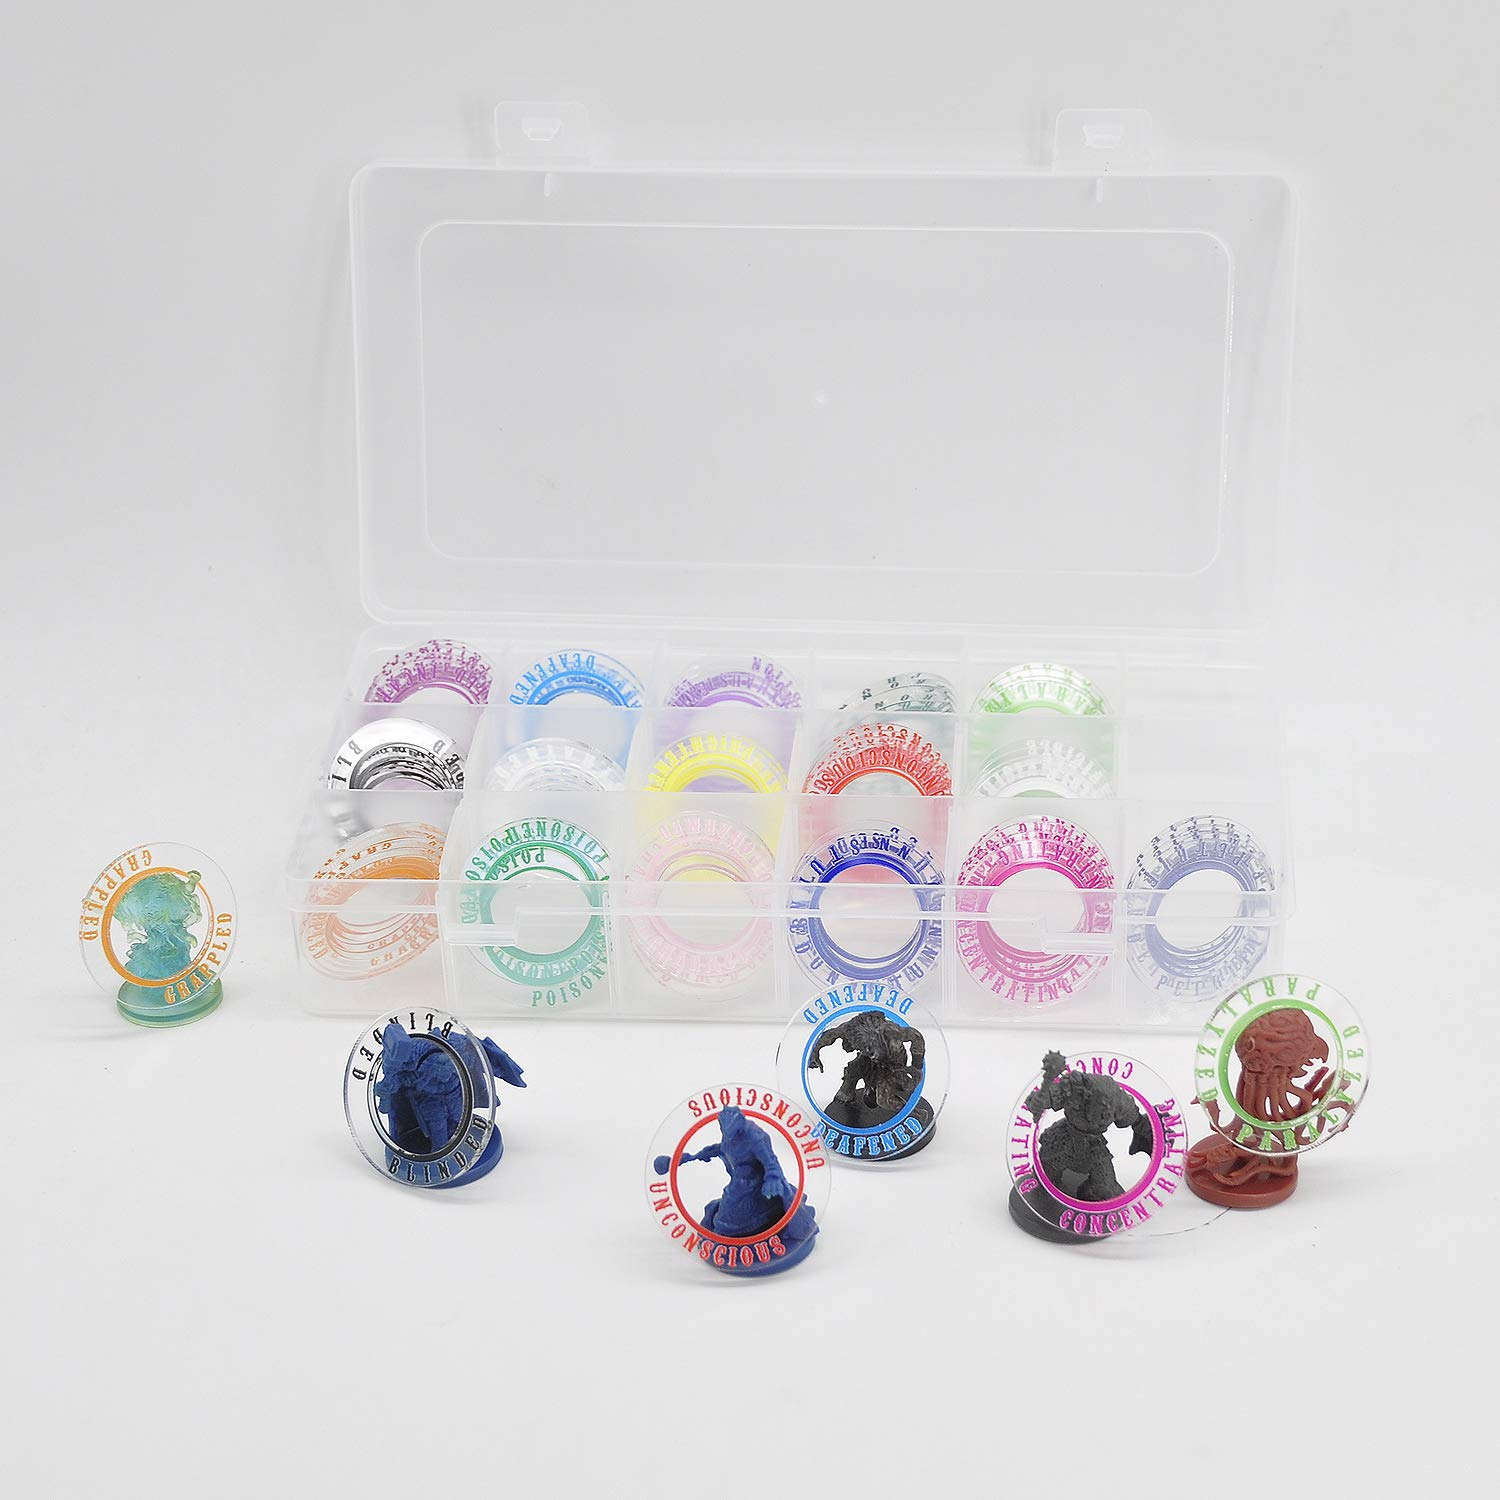 D&D Acrylic Condition Rings 64 PCS Status Effect Markers in 16 Conditions & Colors with 4x4 Storage Box Great DM Tool for Dungeons & Dragons, Pathfinder and RPG Miniatures